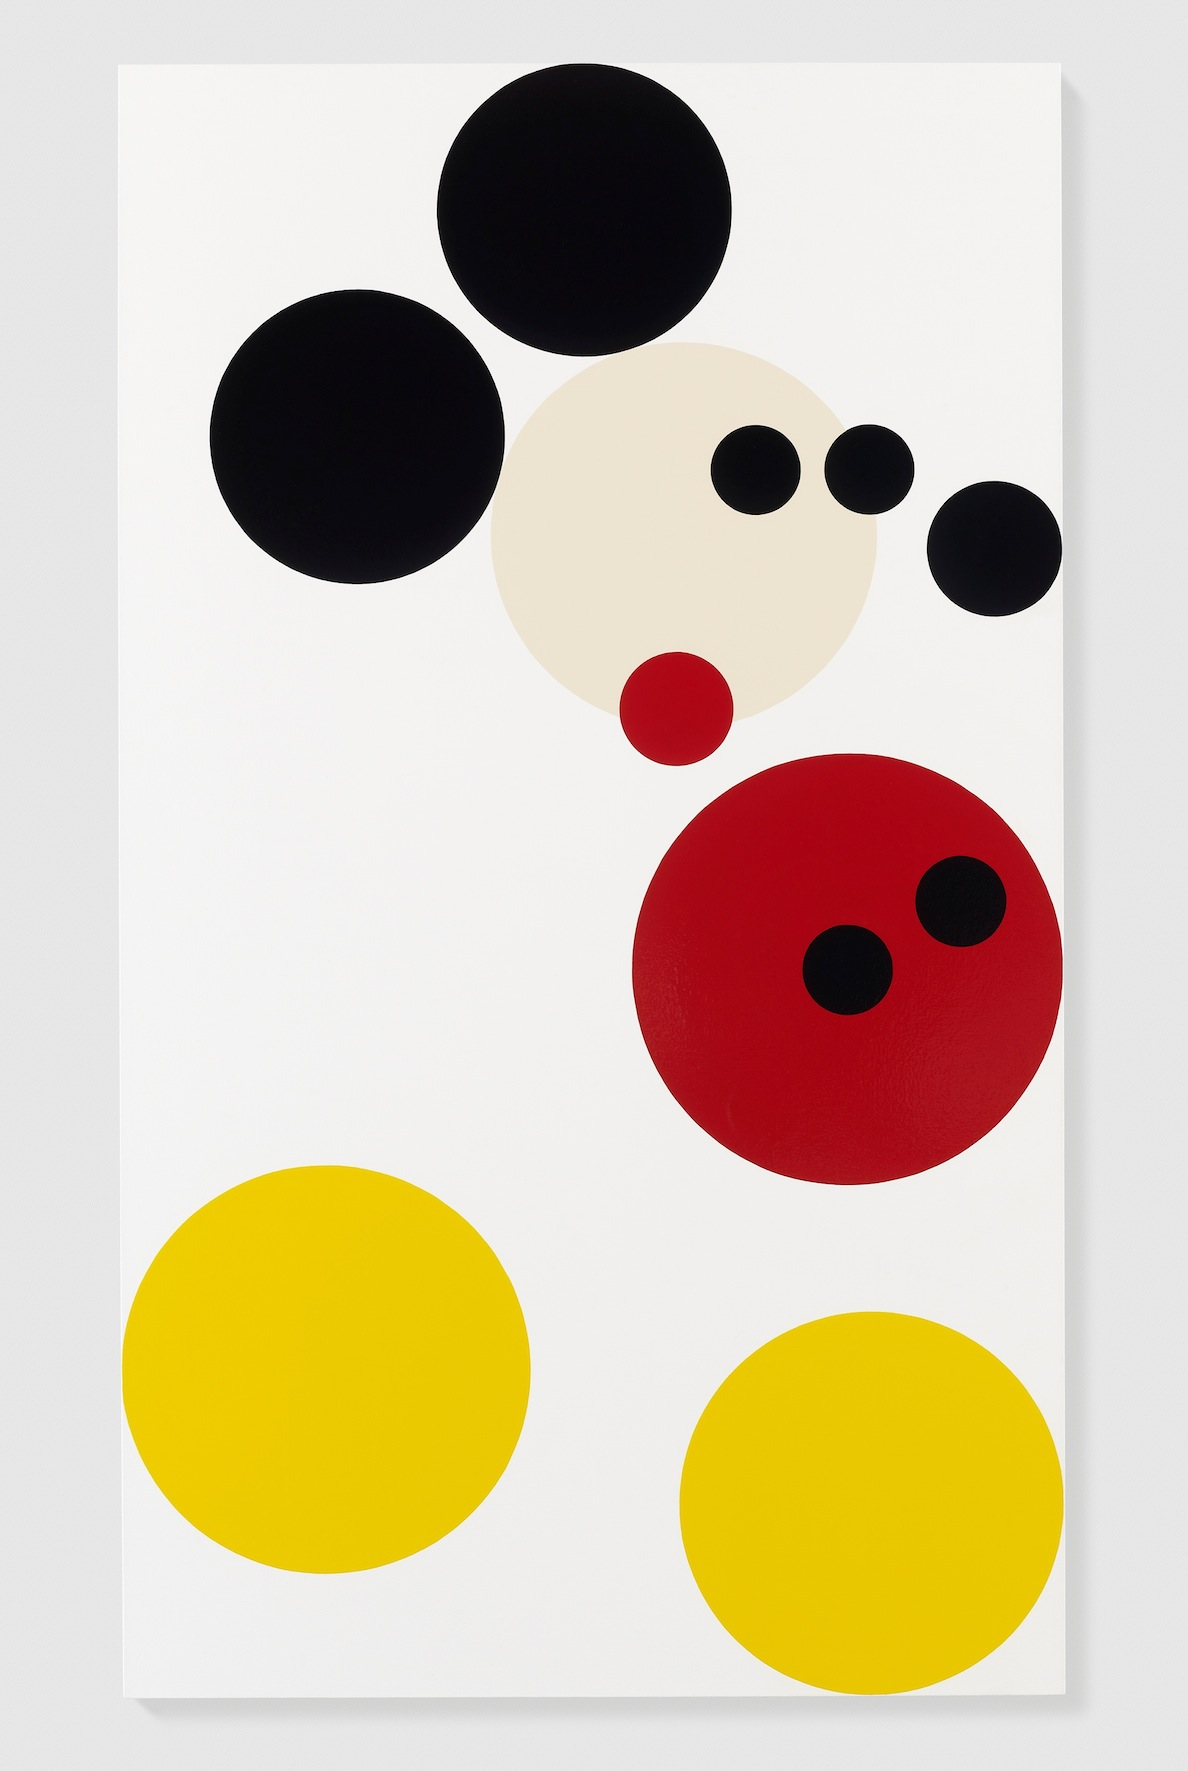 Damien Hirst, Mickey, 2013, vernice su tela, 182.9x105.4 cm, Photo by Prudence Cuming Associates